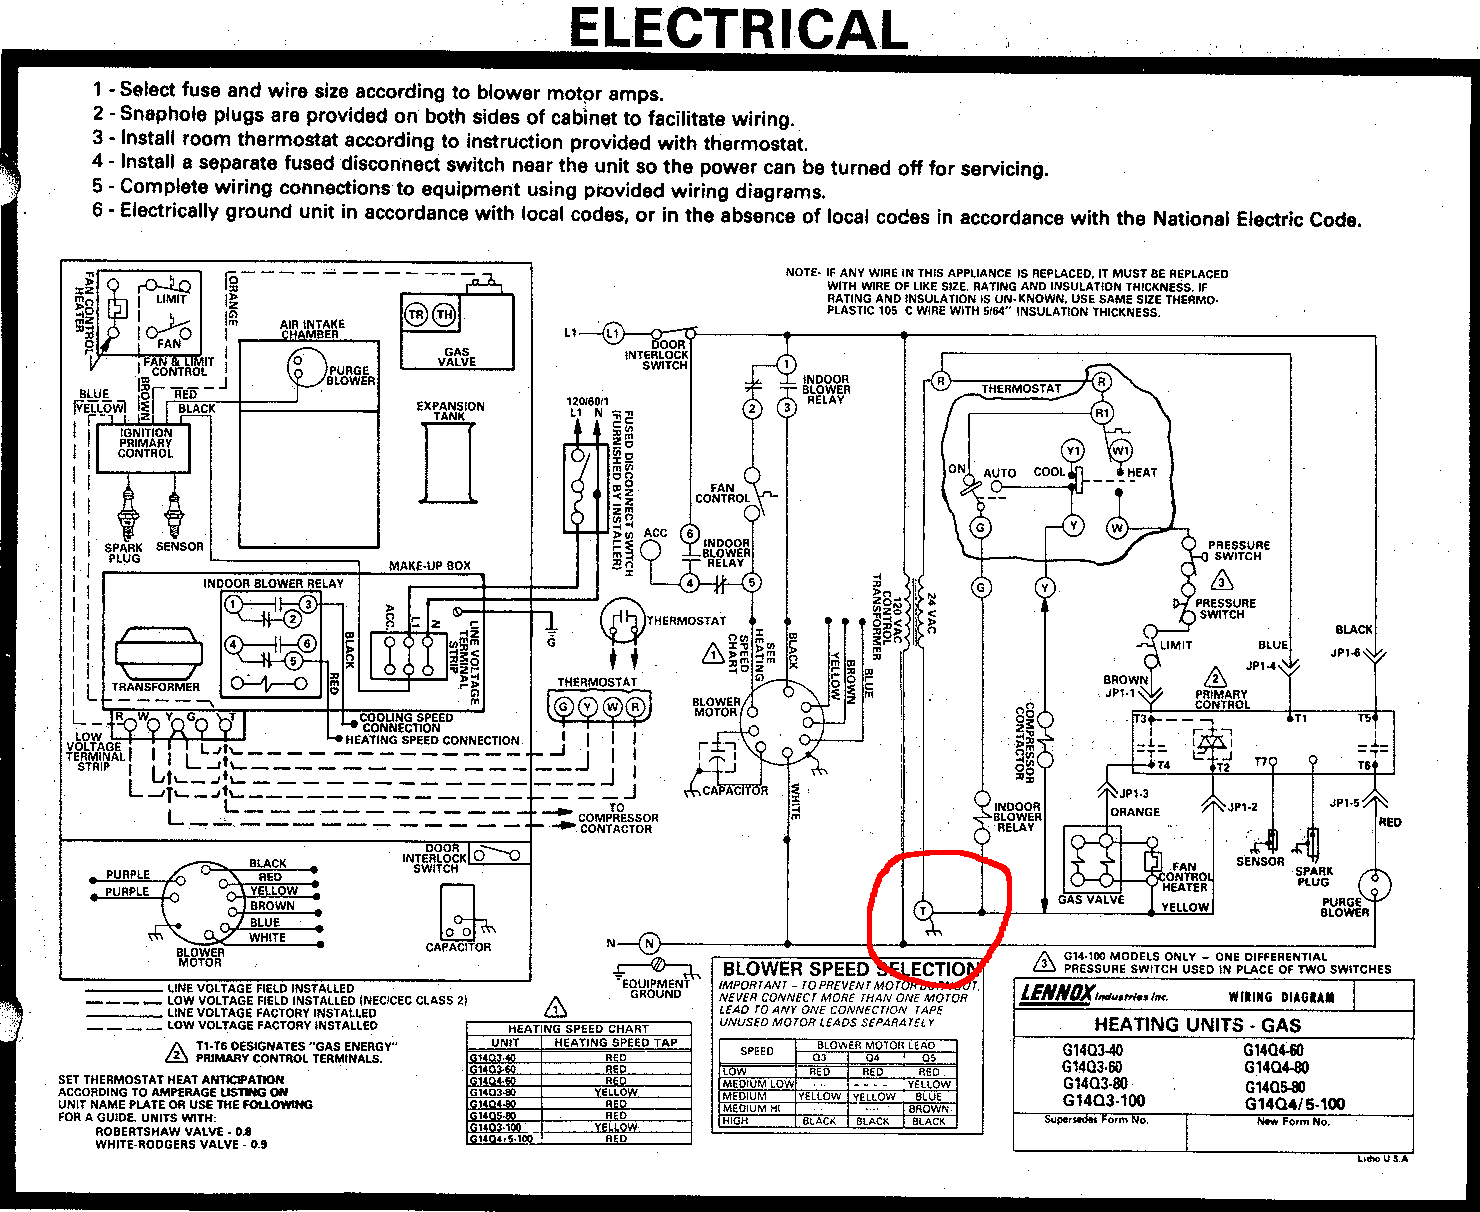 Can I Use The T Terminal In My Furnace As The C For A Wifi - Furnace Wiring Diagram